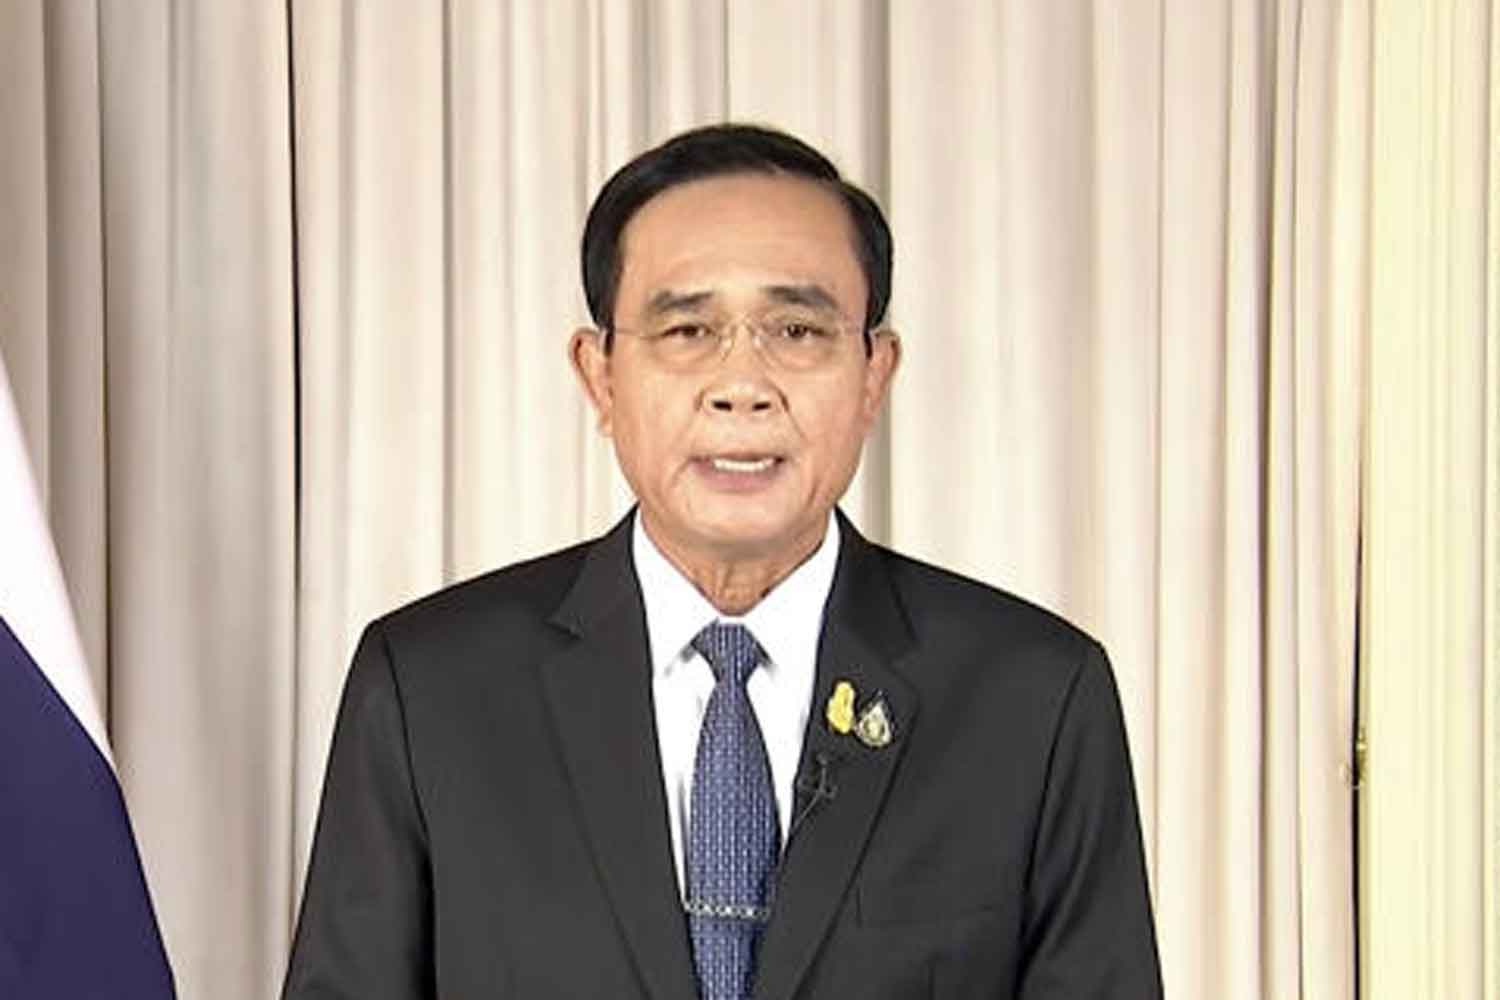 Prime Minsiter Prayut Chan-o-cha announces a state of emergency to deal with the coronavirus pandemic in a nationwide television broadcast last month. He has now asked the country's richest people to implement projects to help affected people. (Photo:  Television Pool)